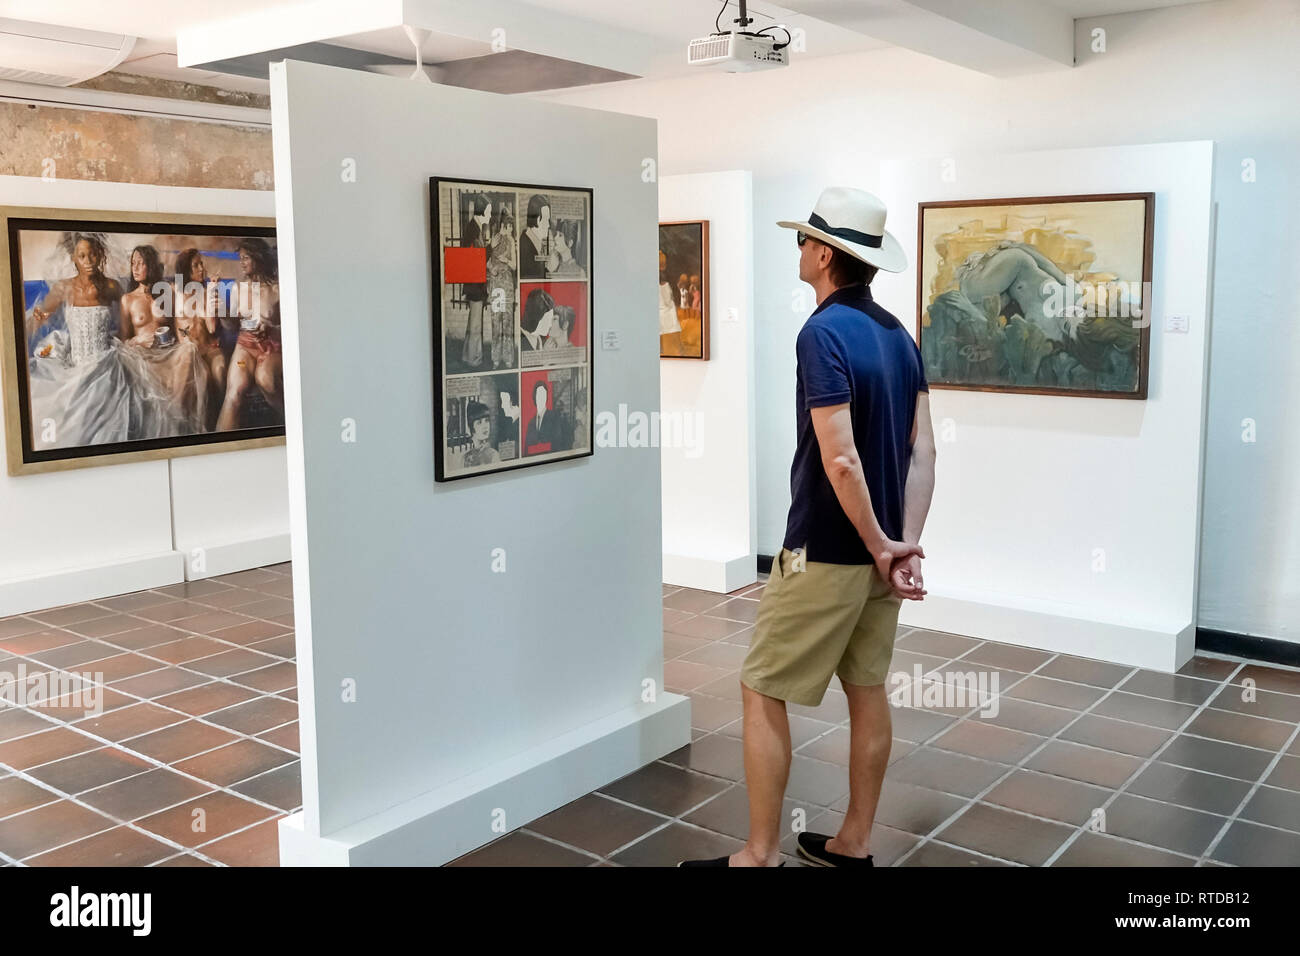 Cartagena Colombia Old Walled City Center centre Centro Museo de Arte Moderno modern art museum gallery exhibit inside paintings sculpture man looking - Stock Image